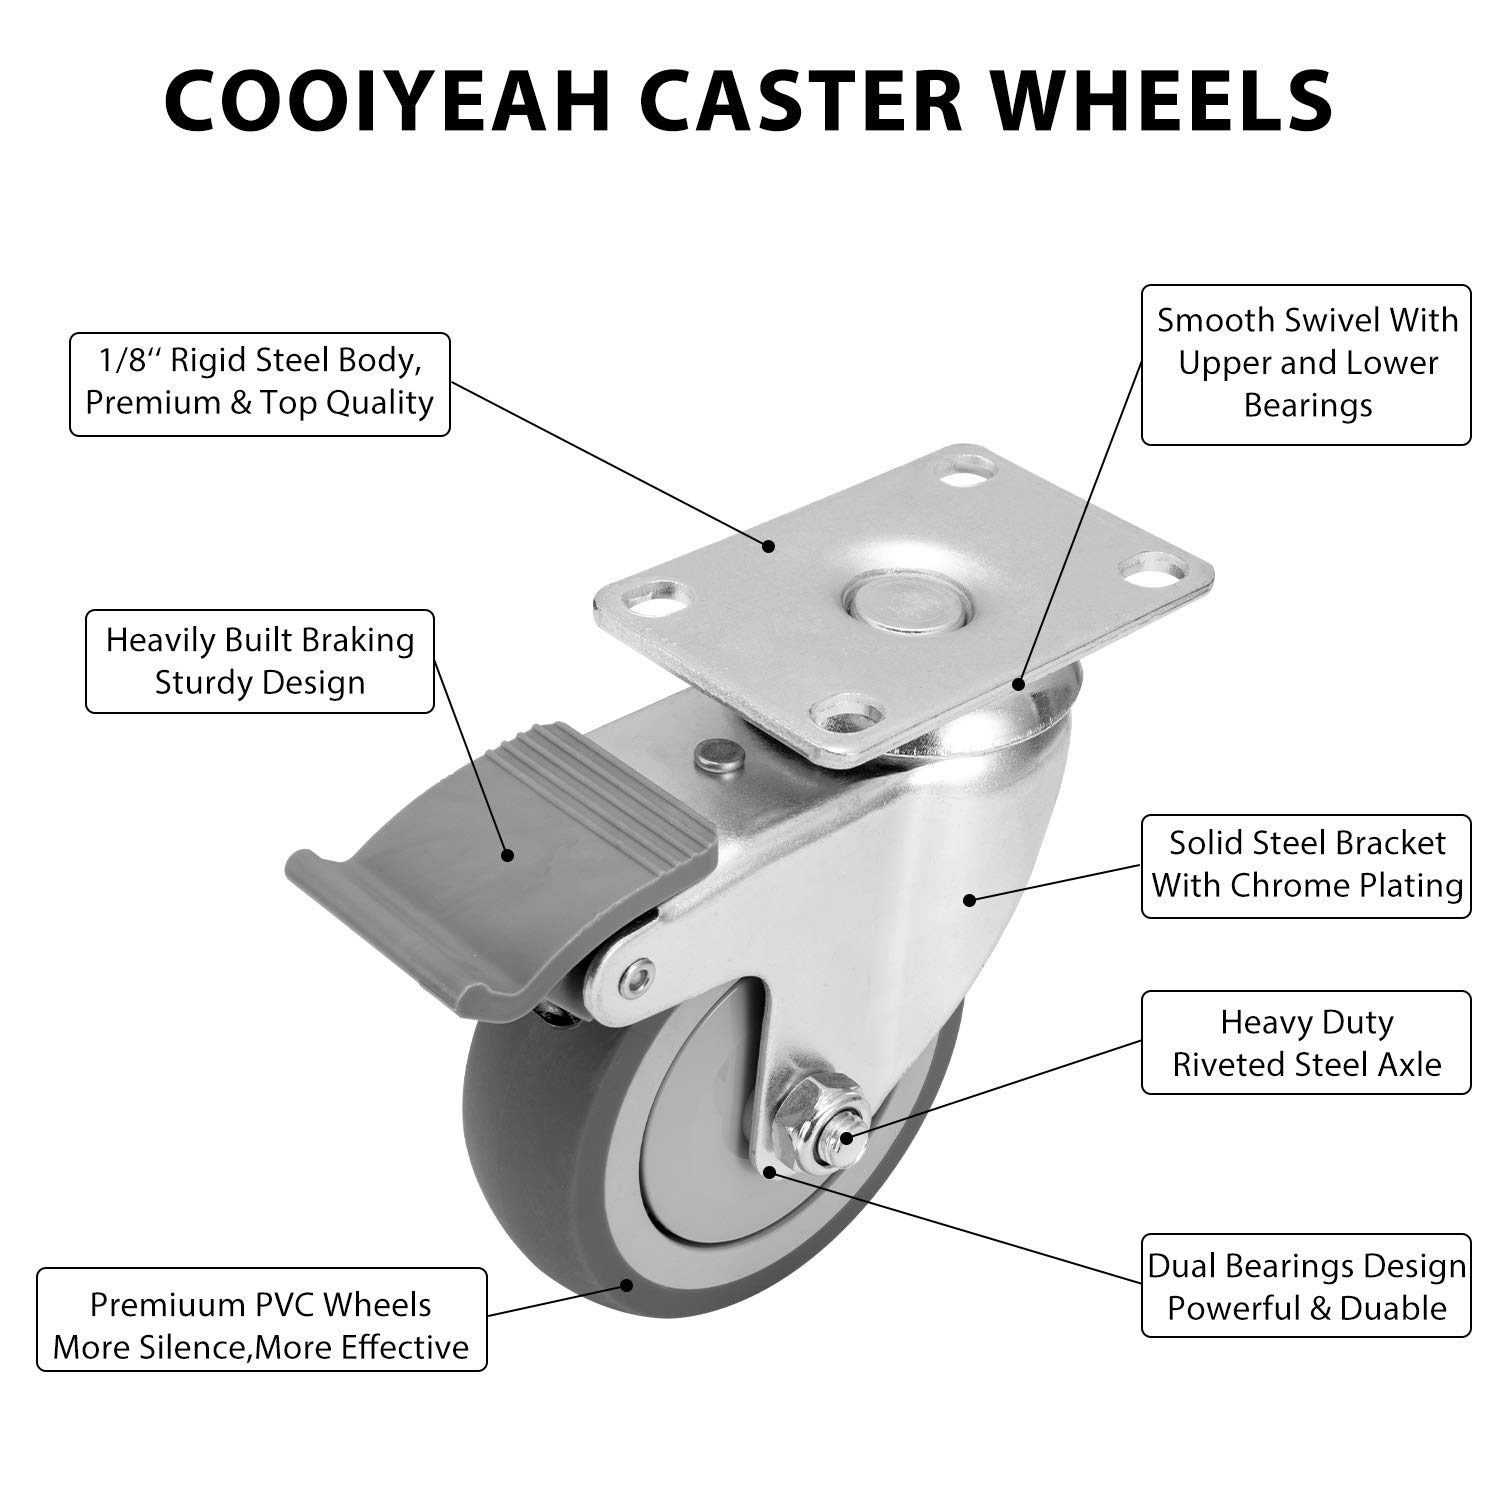 2 with Brake and 2 Without 4 TPR Super Silent Caster Heavy Duty1200lbs Swivel Caster Wheels with Safety Dual Locking Casters Set of 4